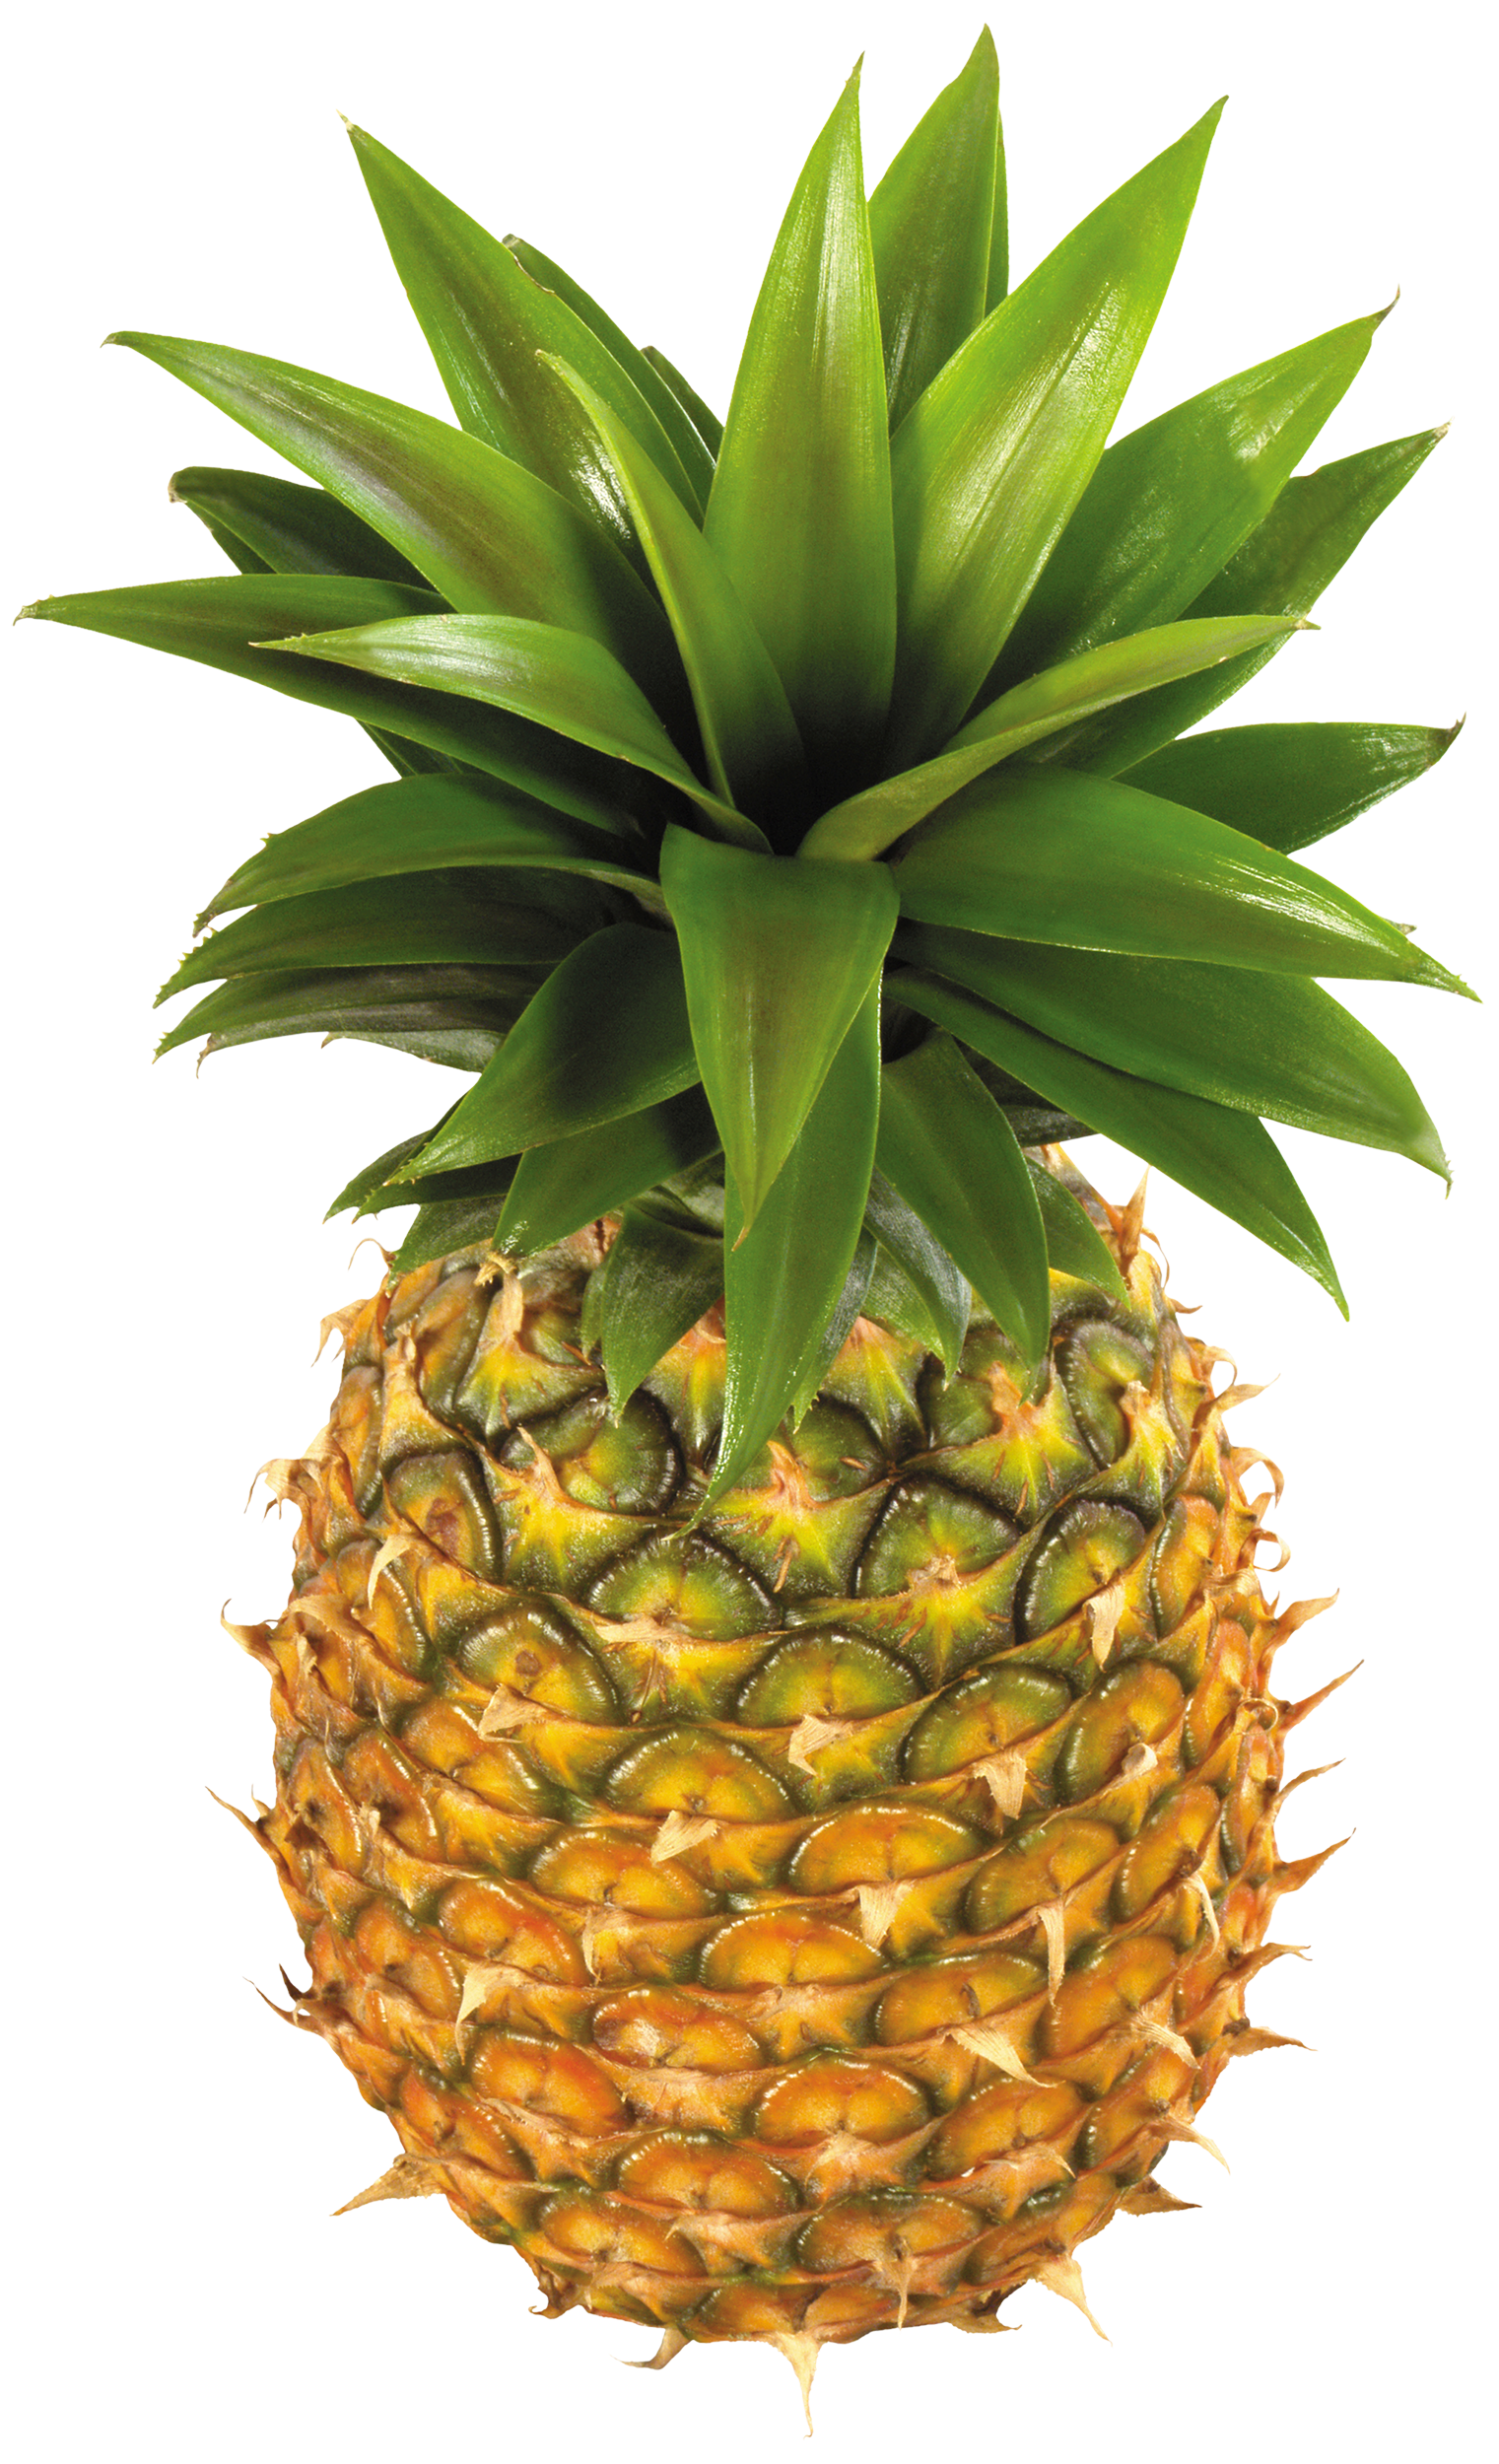 Pineapple clipart transparent. Typegoodies me fruit png